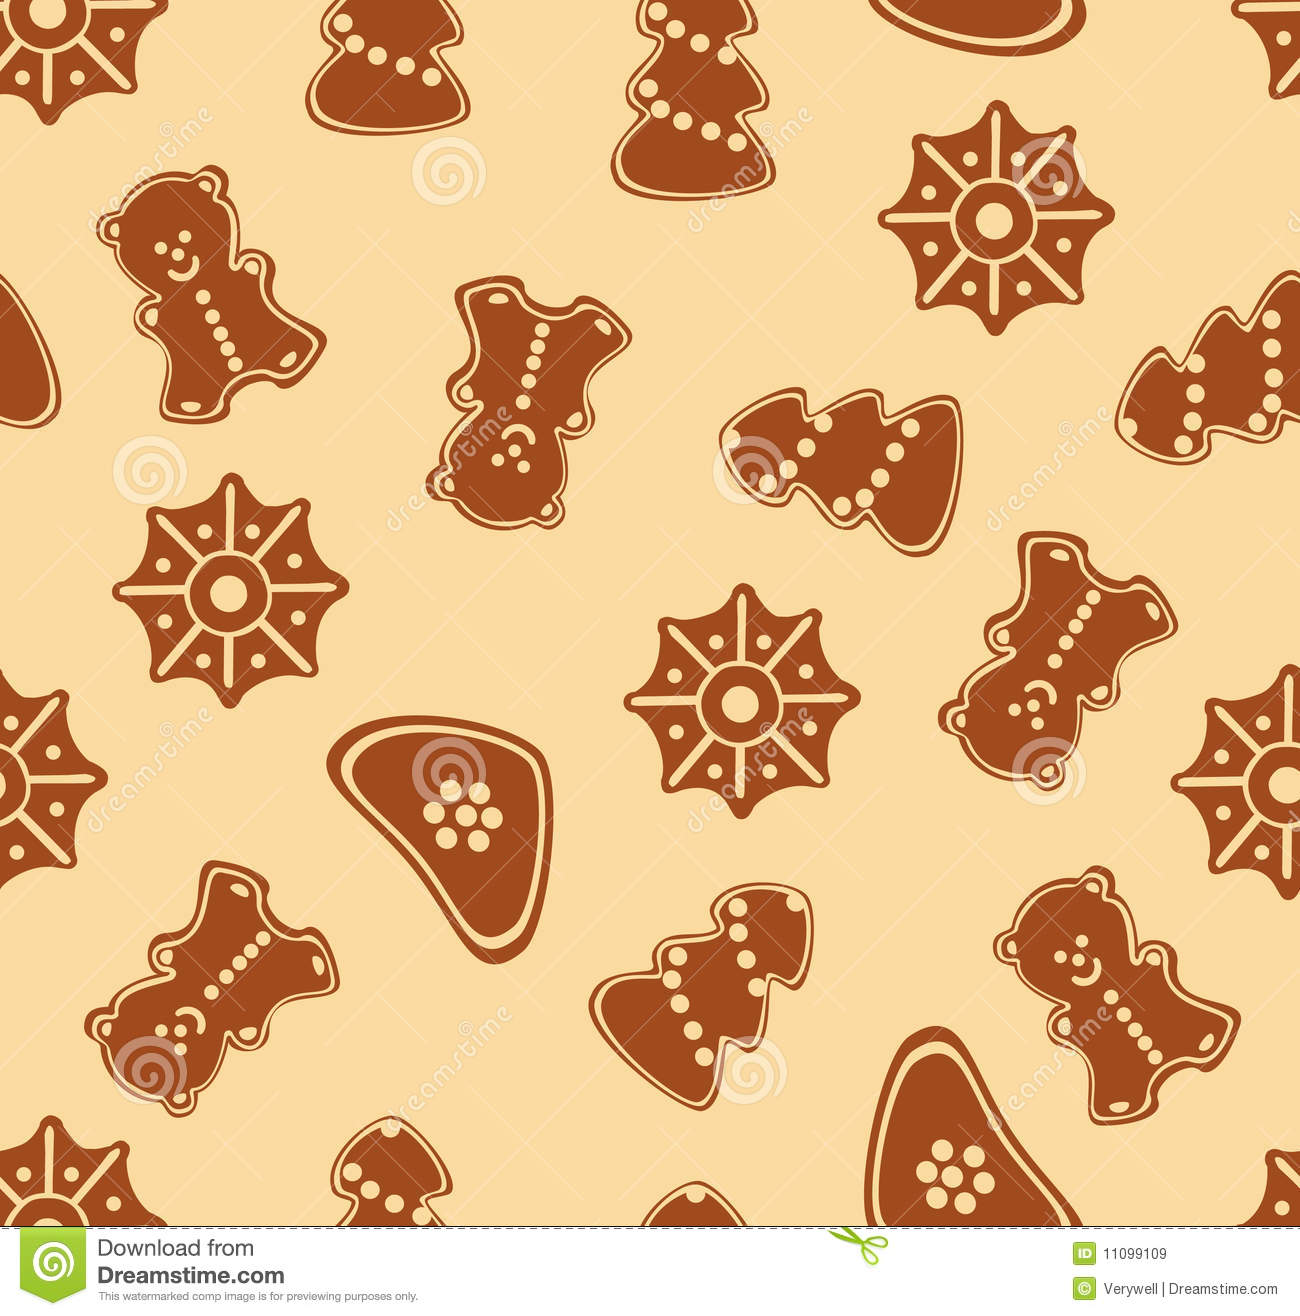 Ginger Cake Patterns And Design : Christmas Ginger Seamless Pattern Royalty Free Stock ...